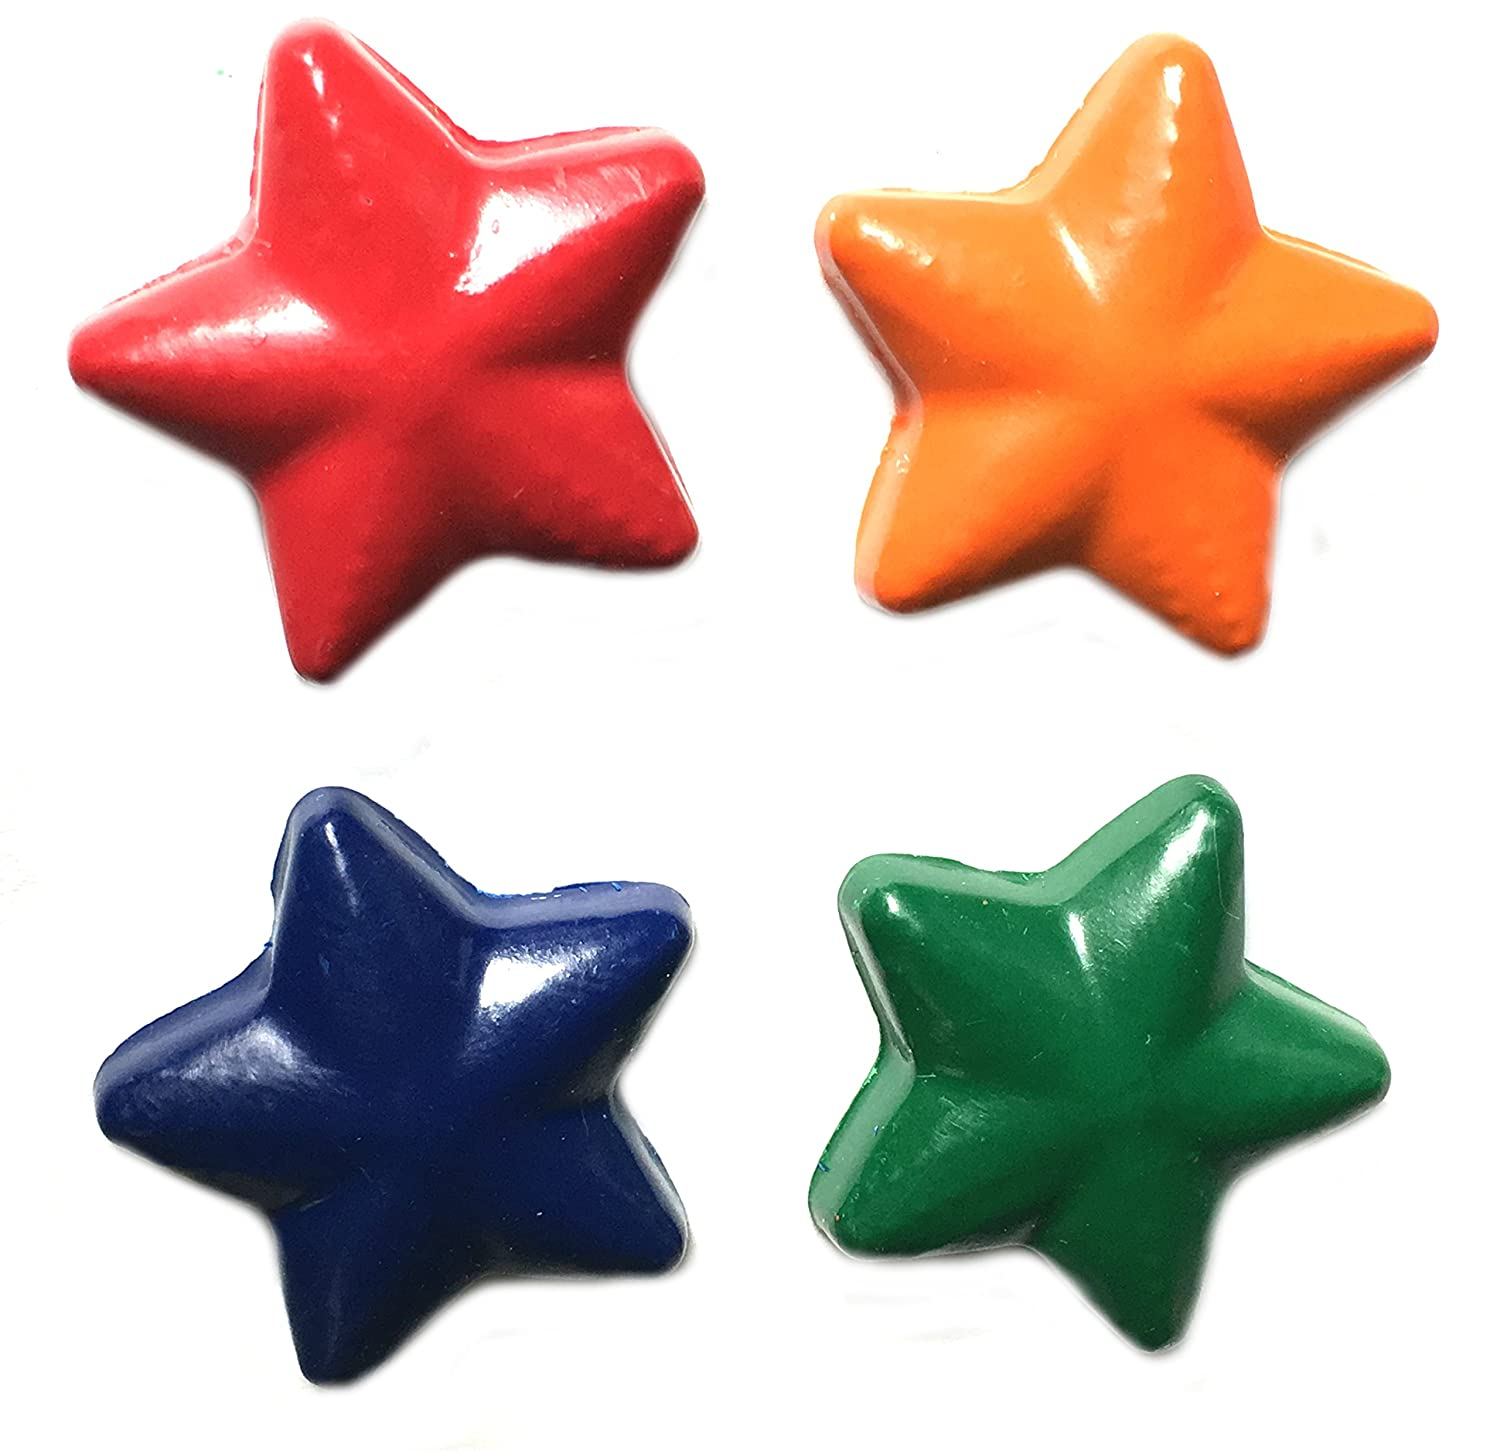 48 Star Crayons by MinifigFans™ - Birthday Party Favors - 12 Sets of 4 - Made in the USA from Crayola Crayons